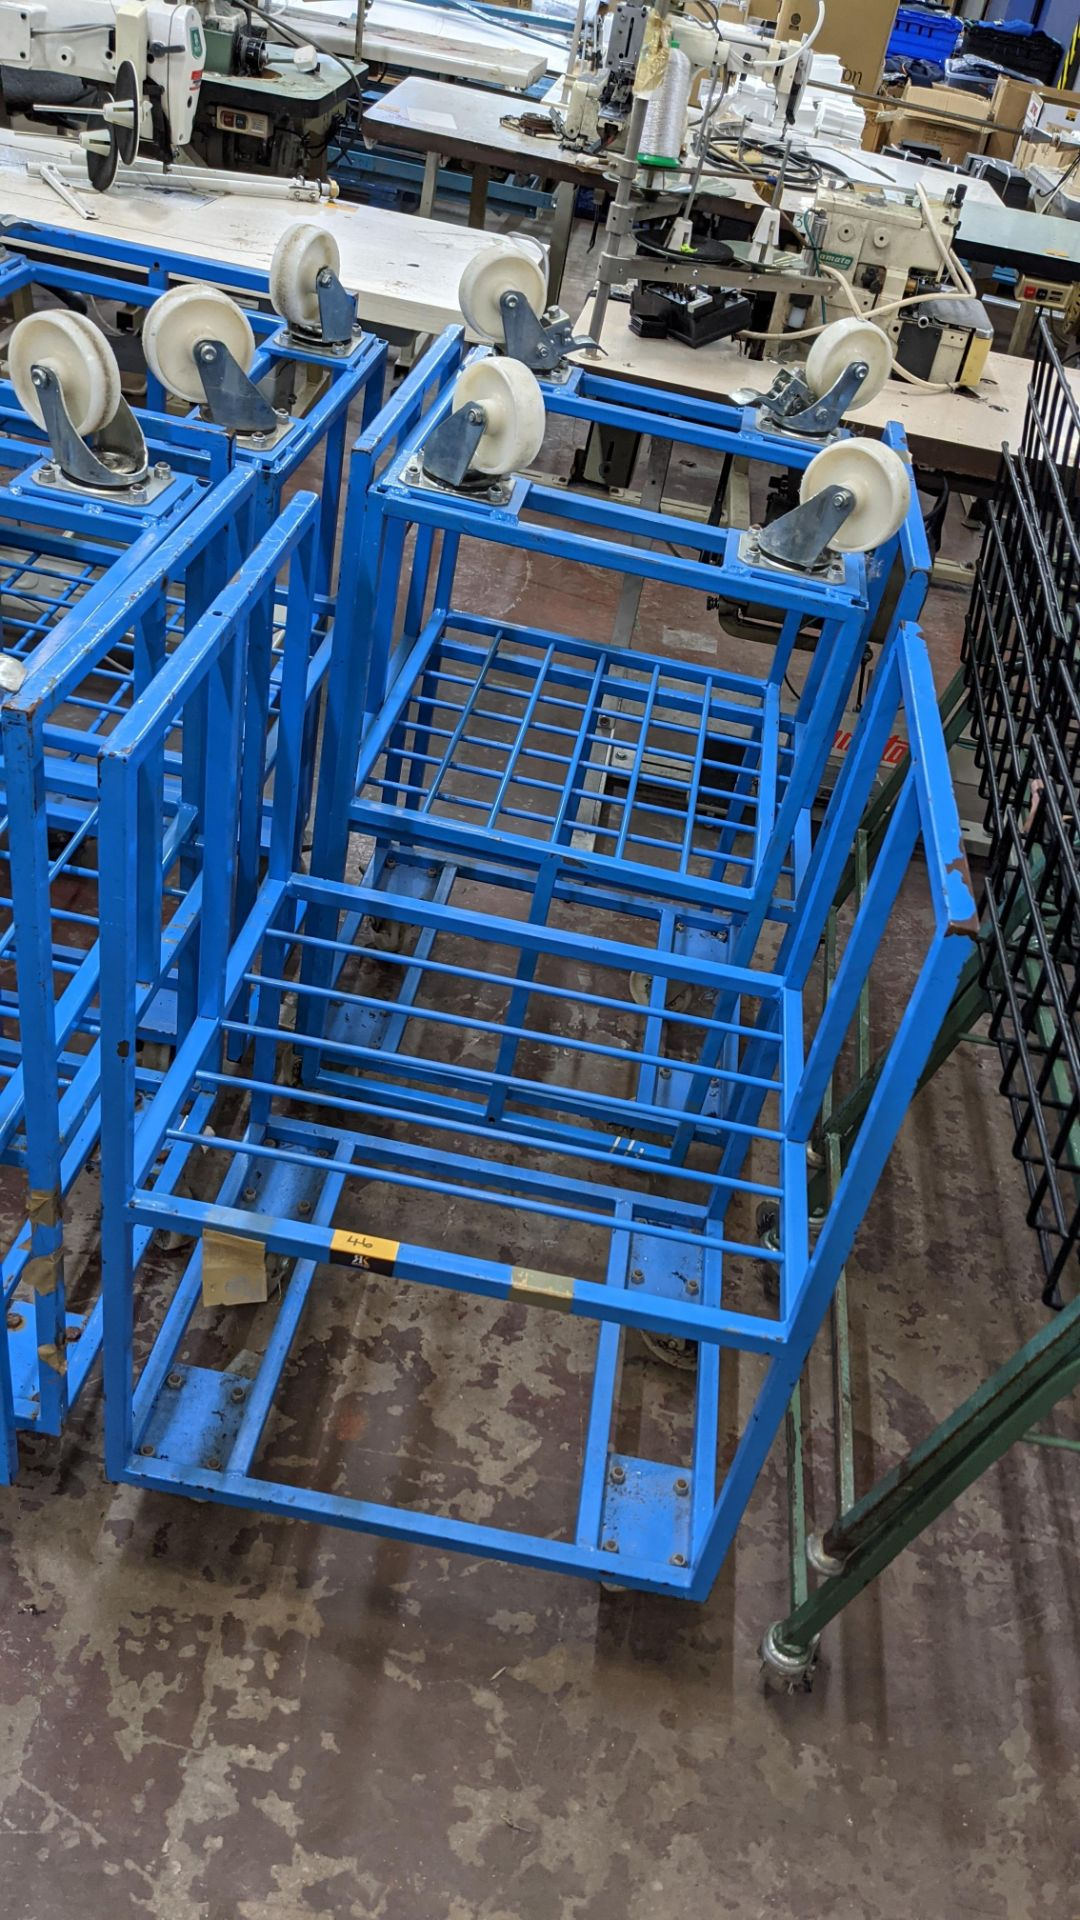 7 off blue mobile trollies - Image 2 of 6